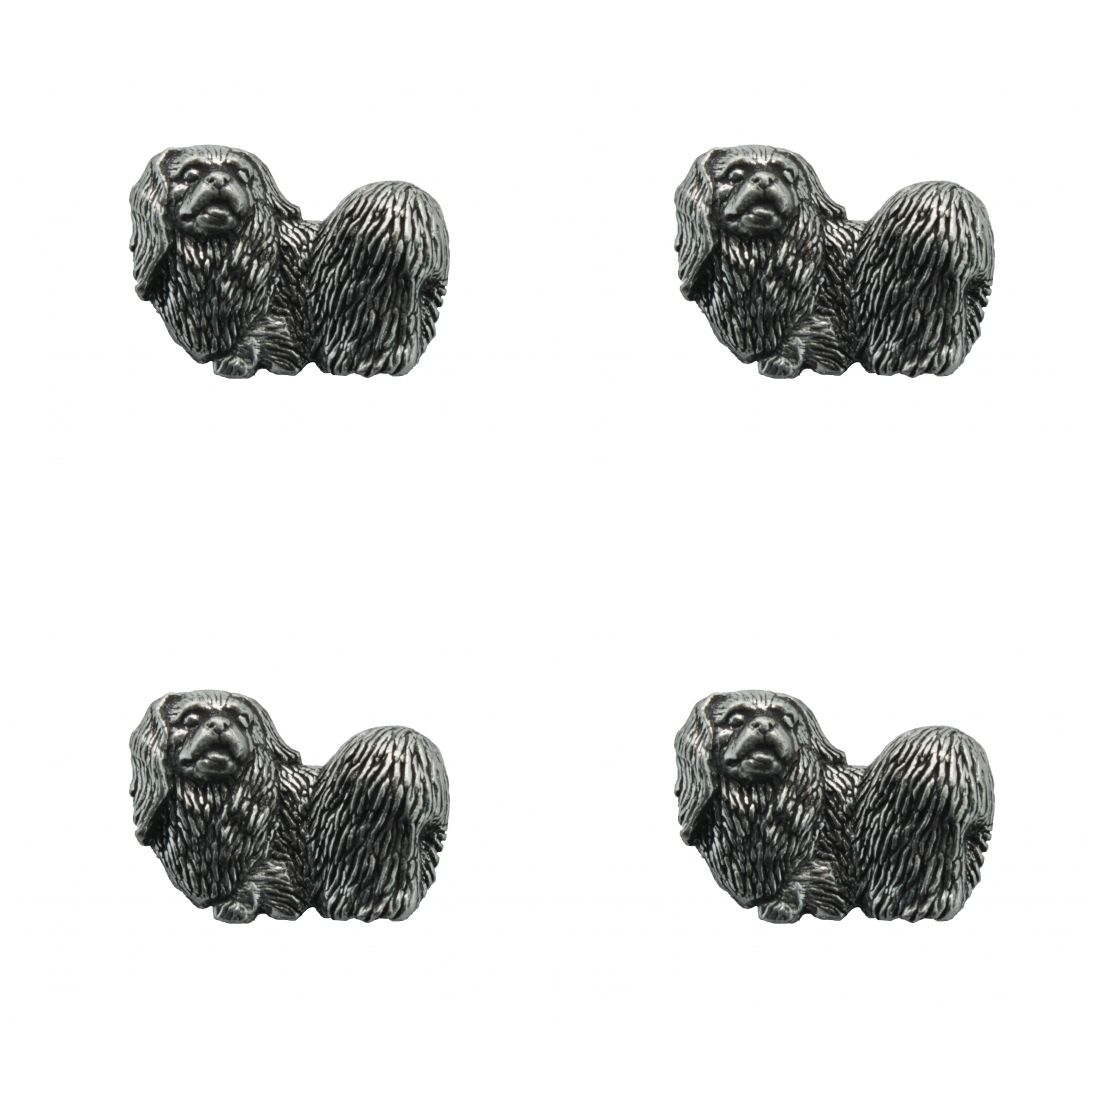 4 x Pin Anstecker Badge Pekinese, 2,7x2,1cm